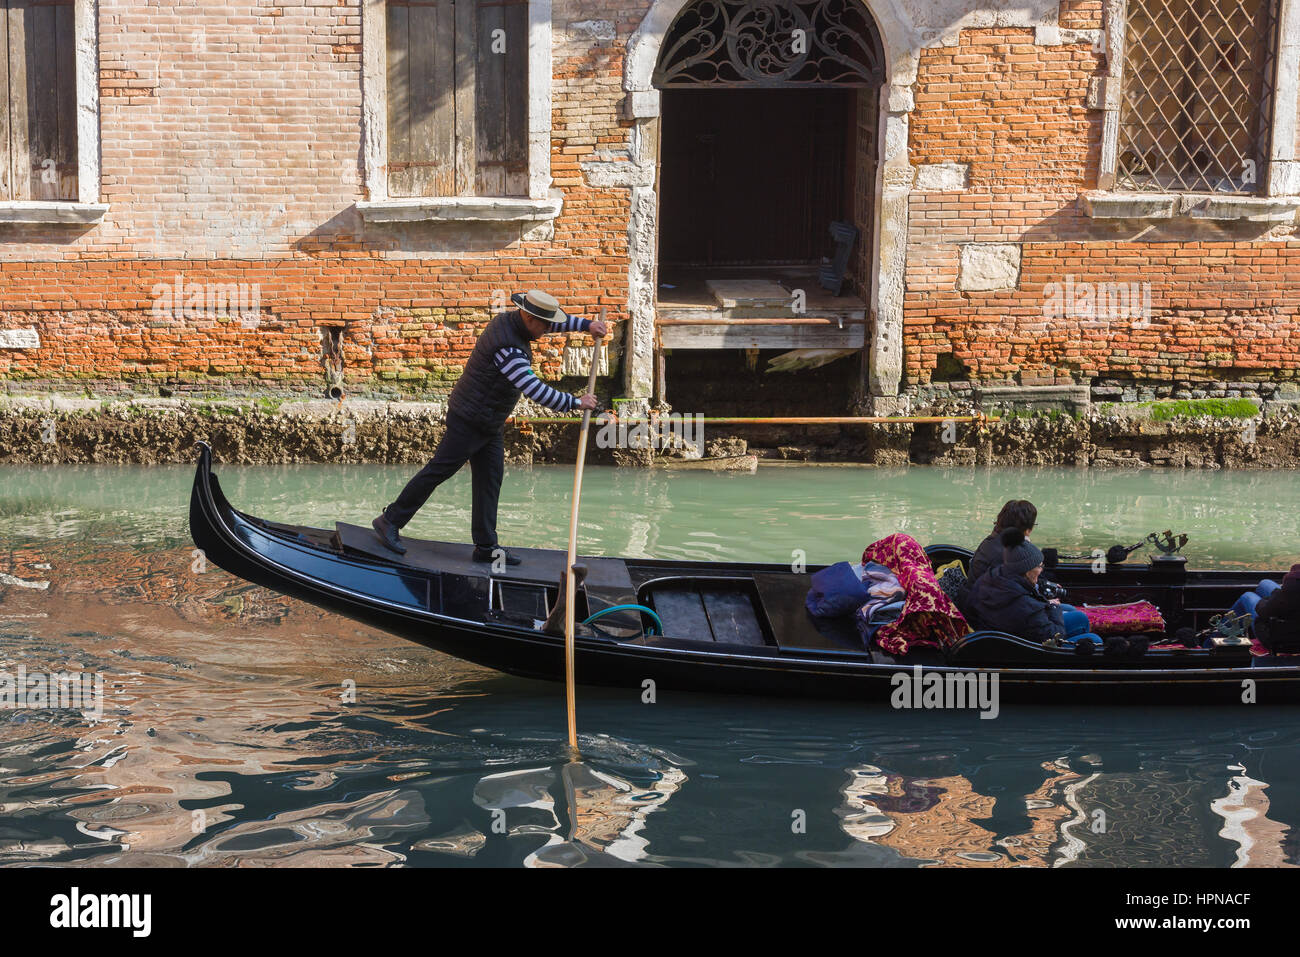 641a5de7245 A Gondolier is seen wearing the traditional Gondolier s hat whilst rowing  along an internal canal in